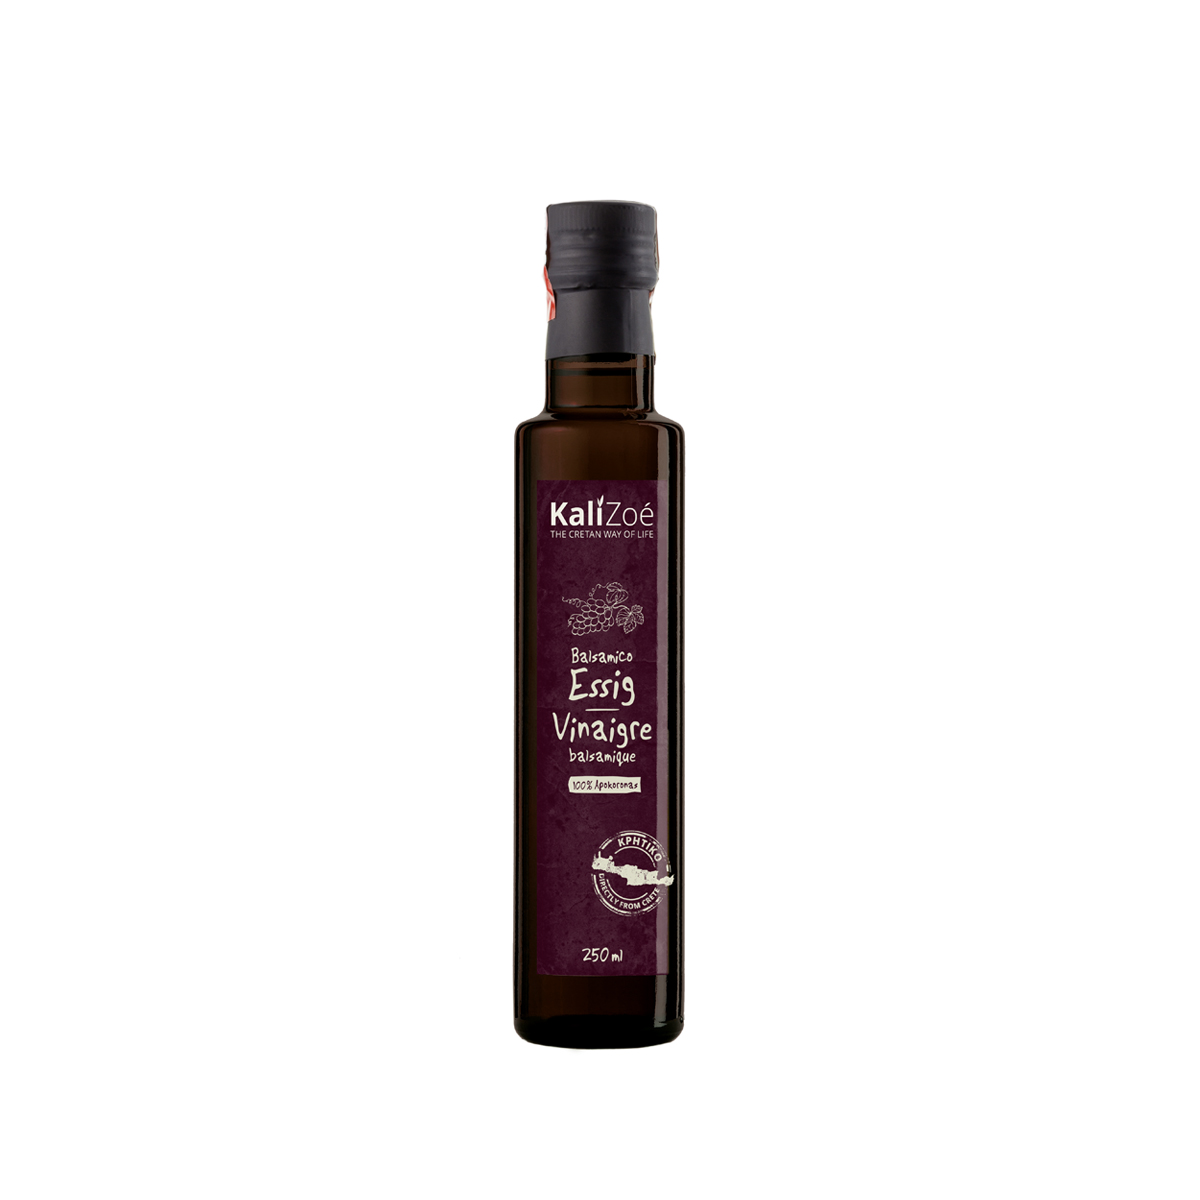 Balsamic vinegar – 250ml